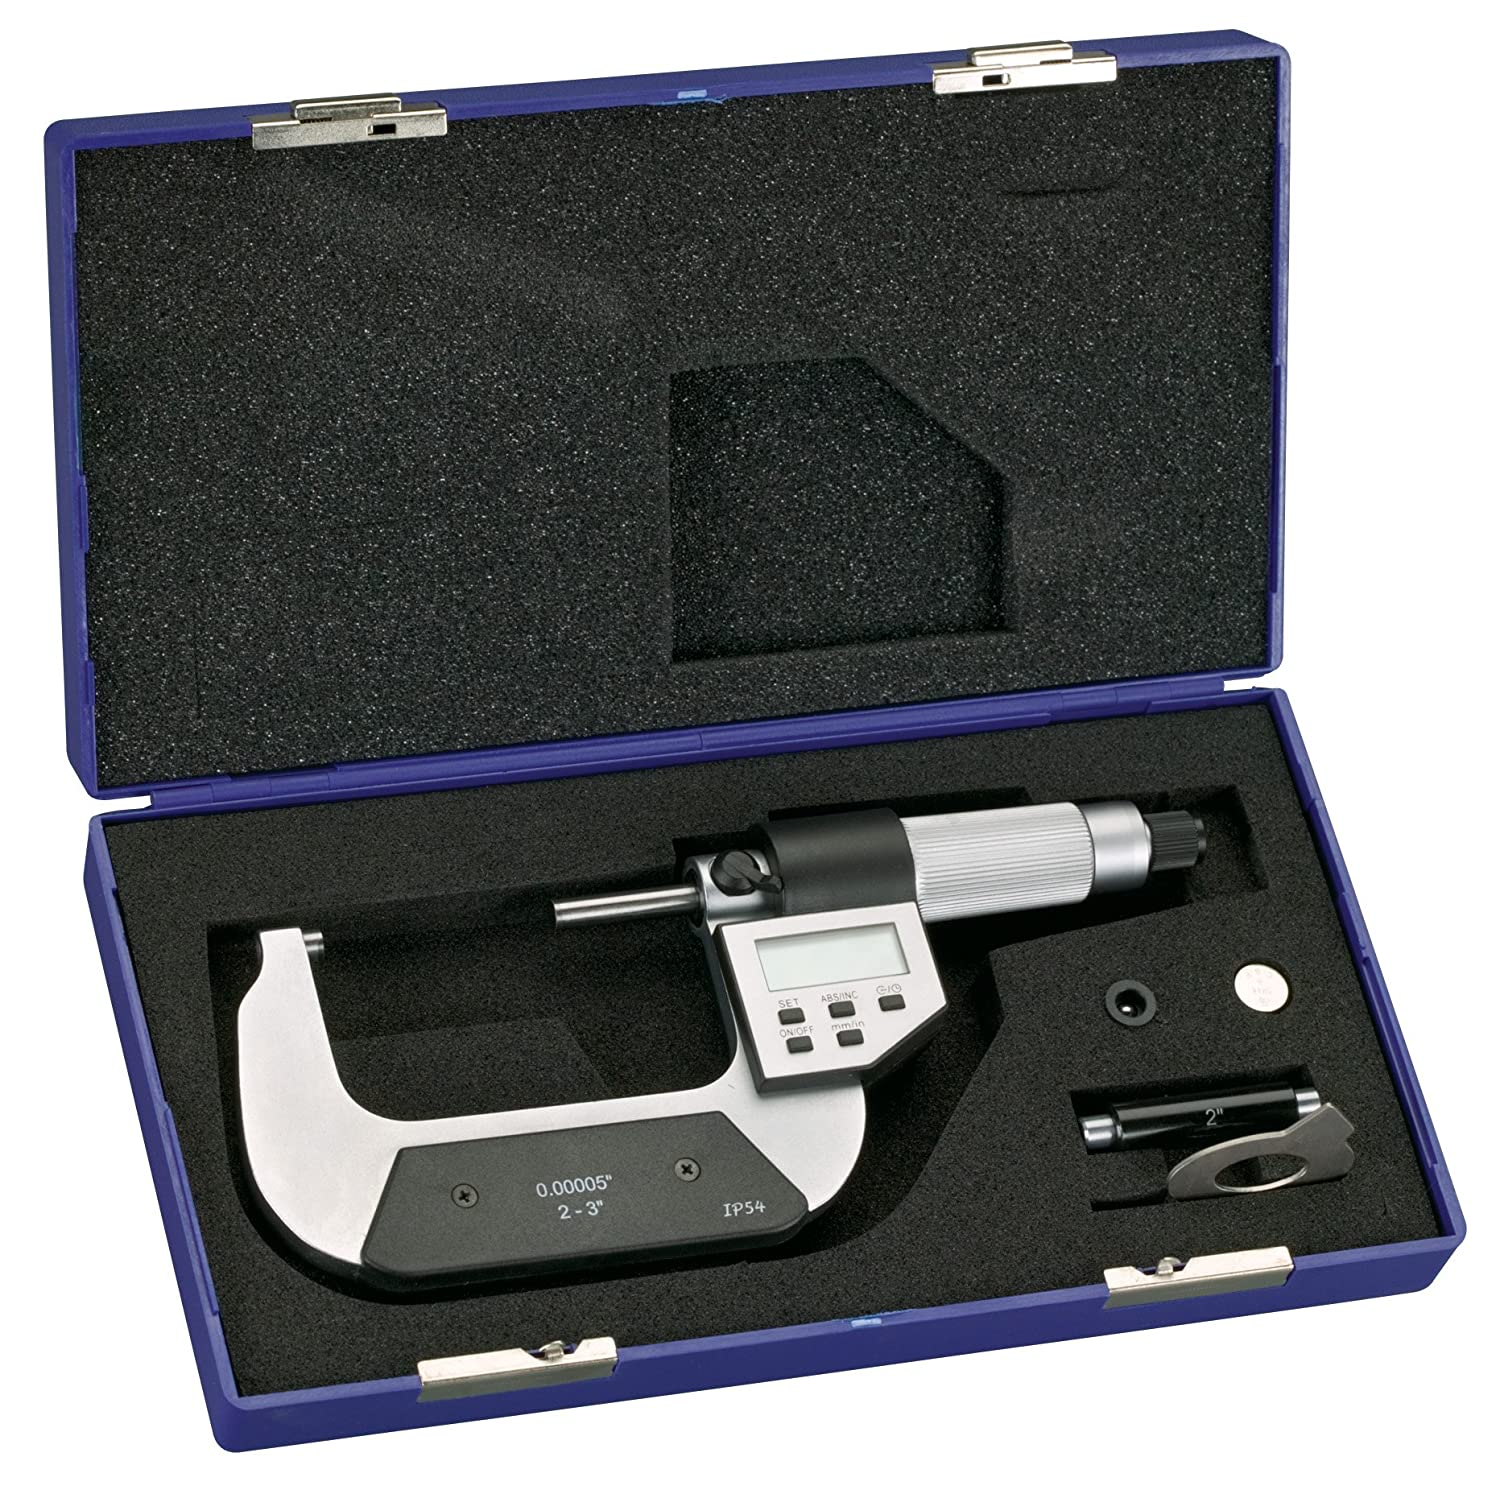 Steelex M1085 Digital Micrometer, 2 to 3-Inch